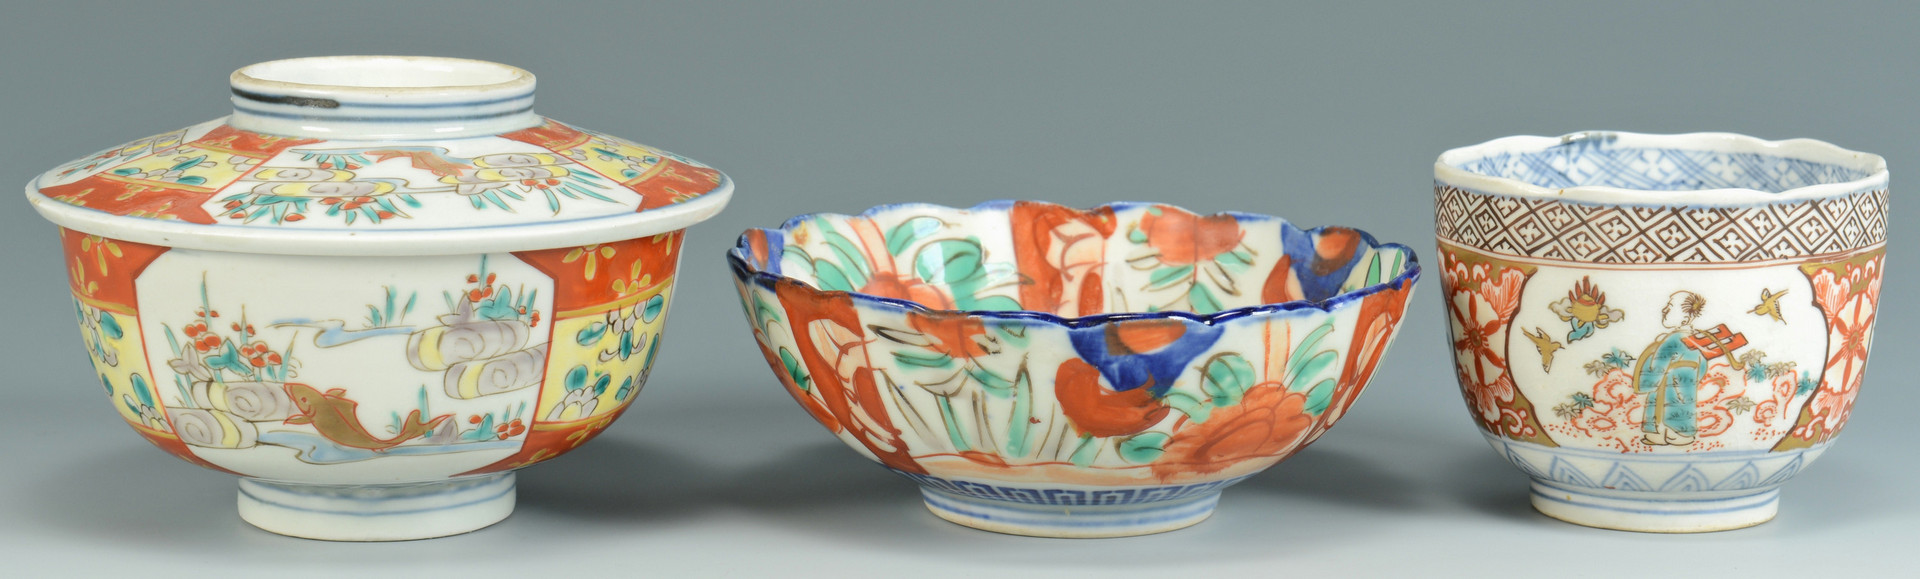 Lot 670: 7 Porcelain Items with Asian Decoration